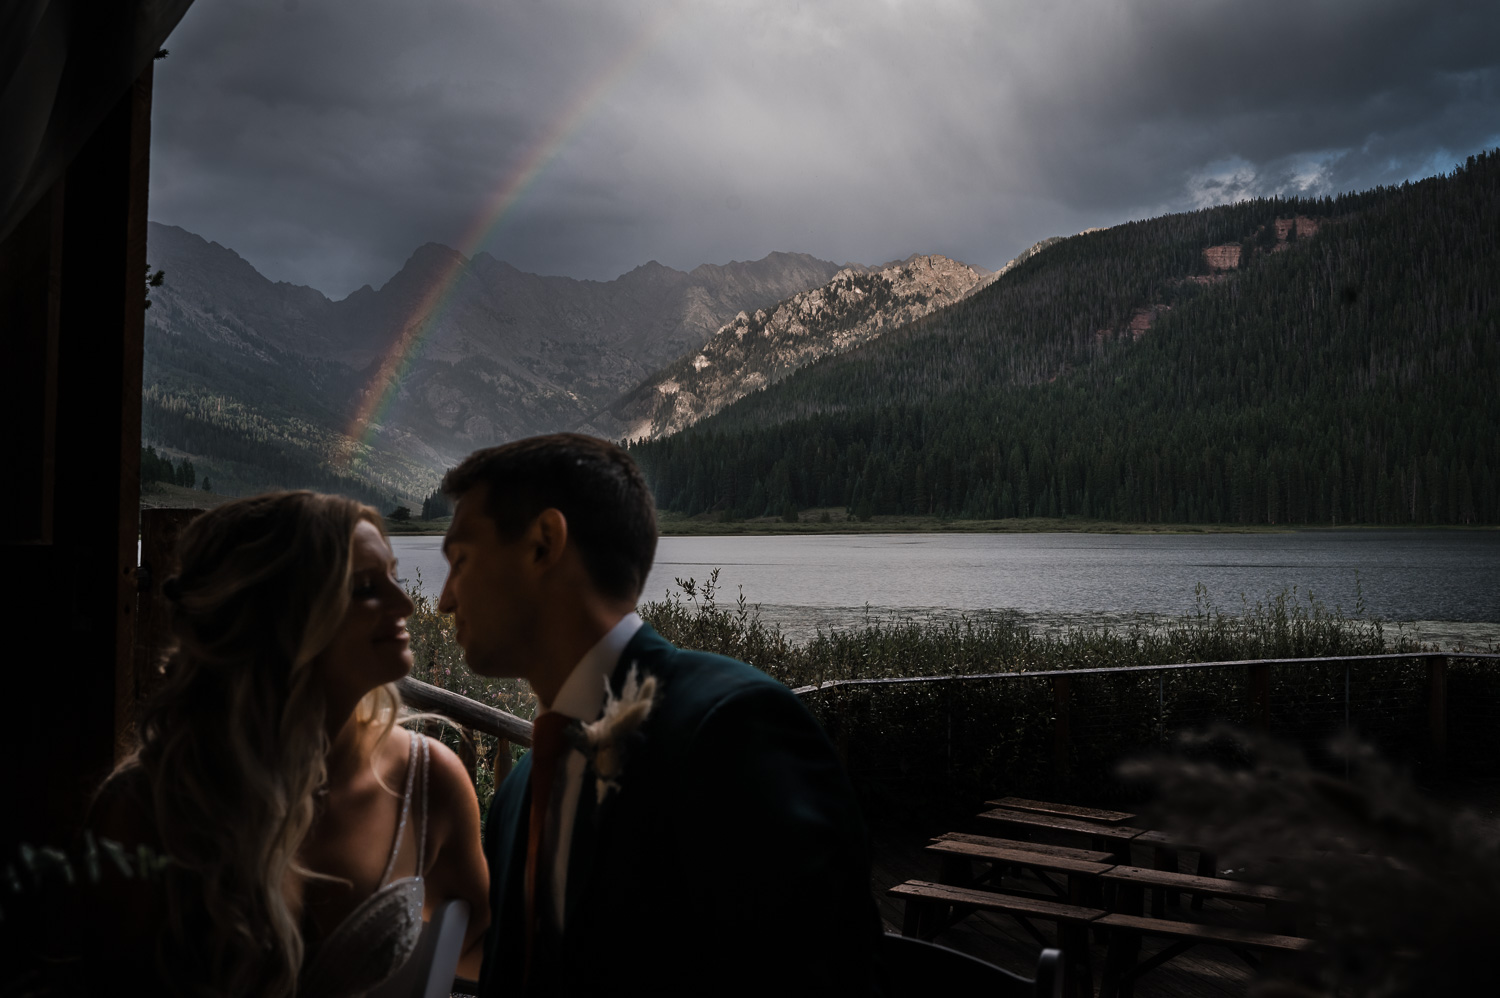 Bride and groom kiss as a Rainbow appears on the mountain behind them at Piney River Ranch